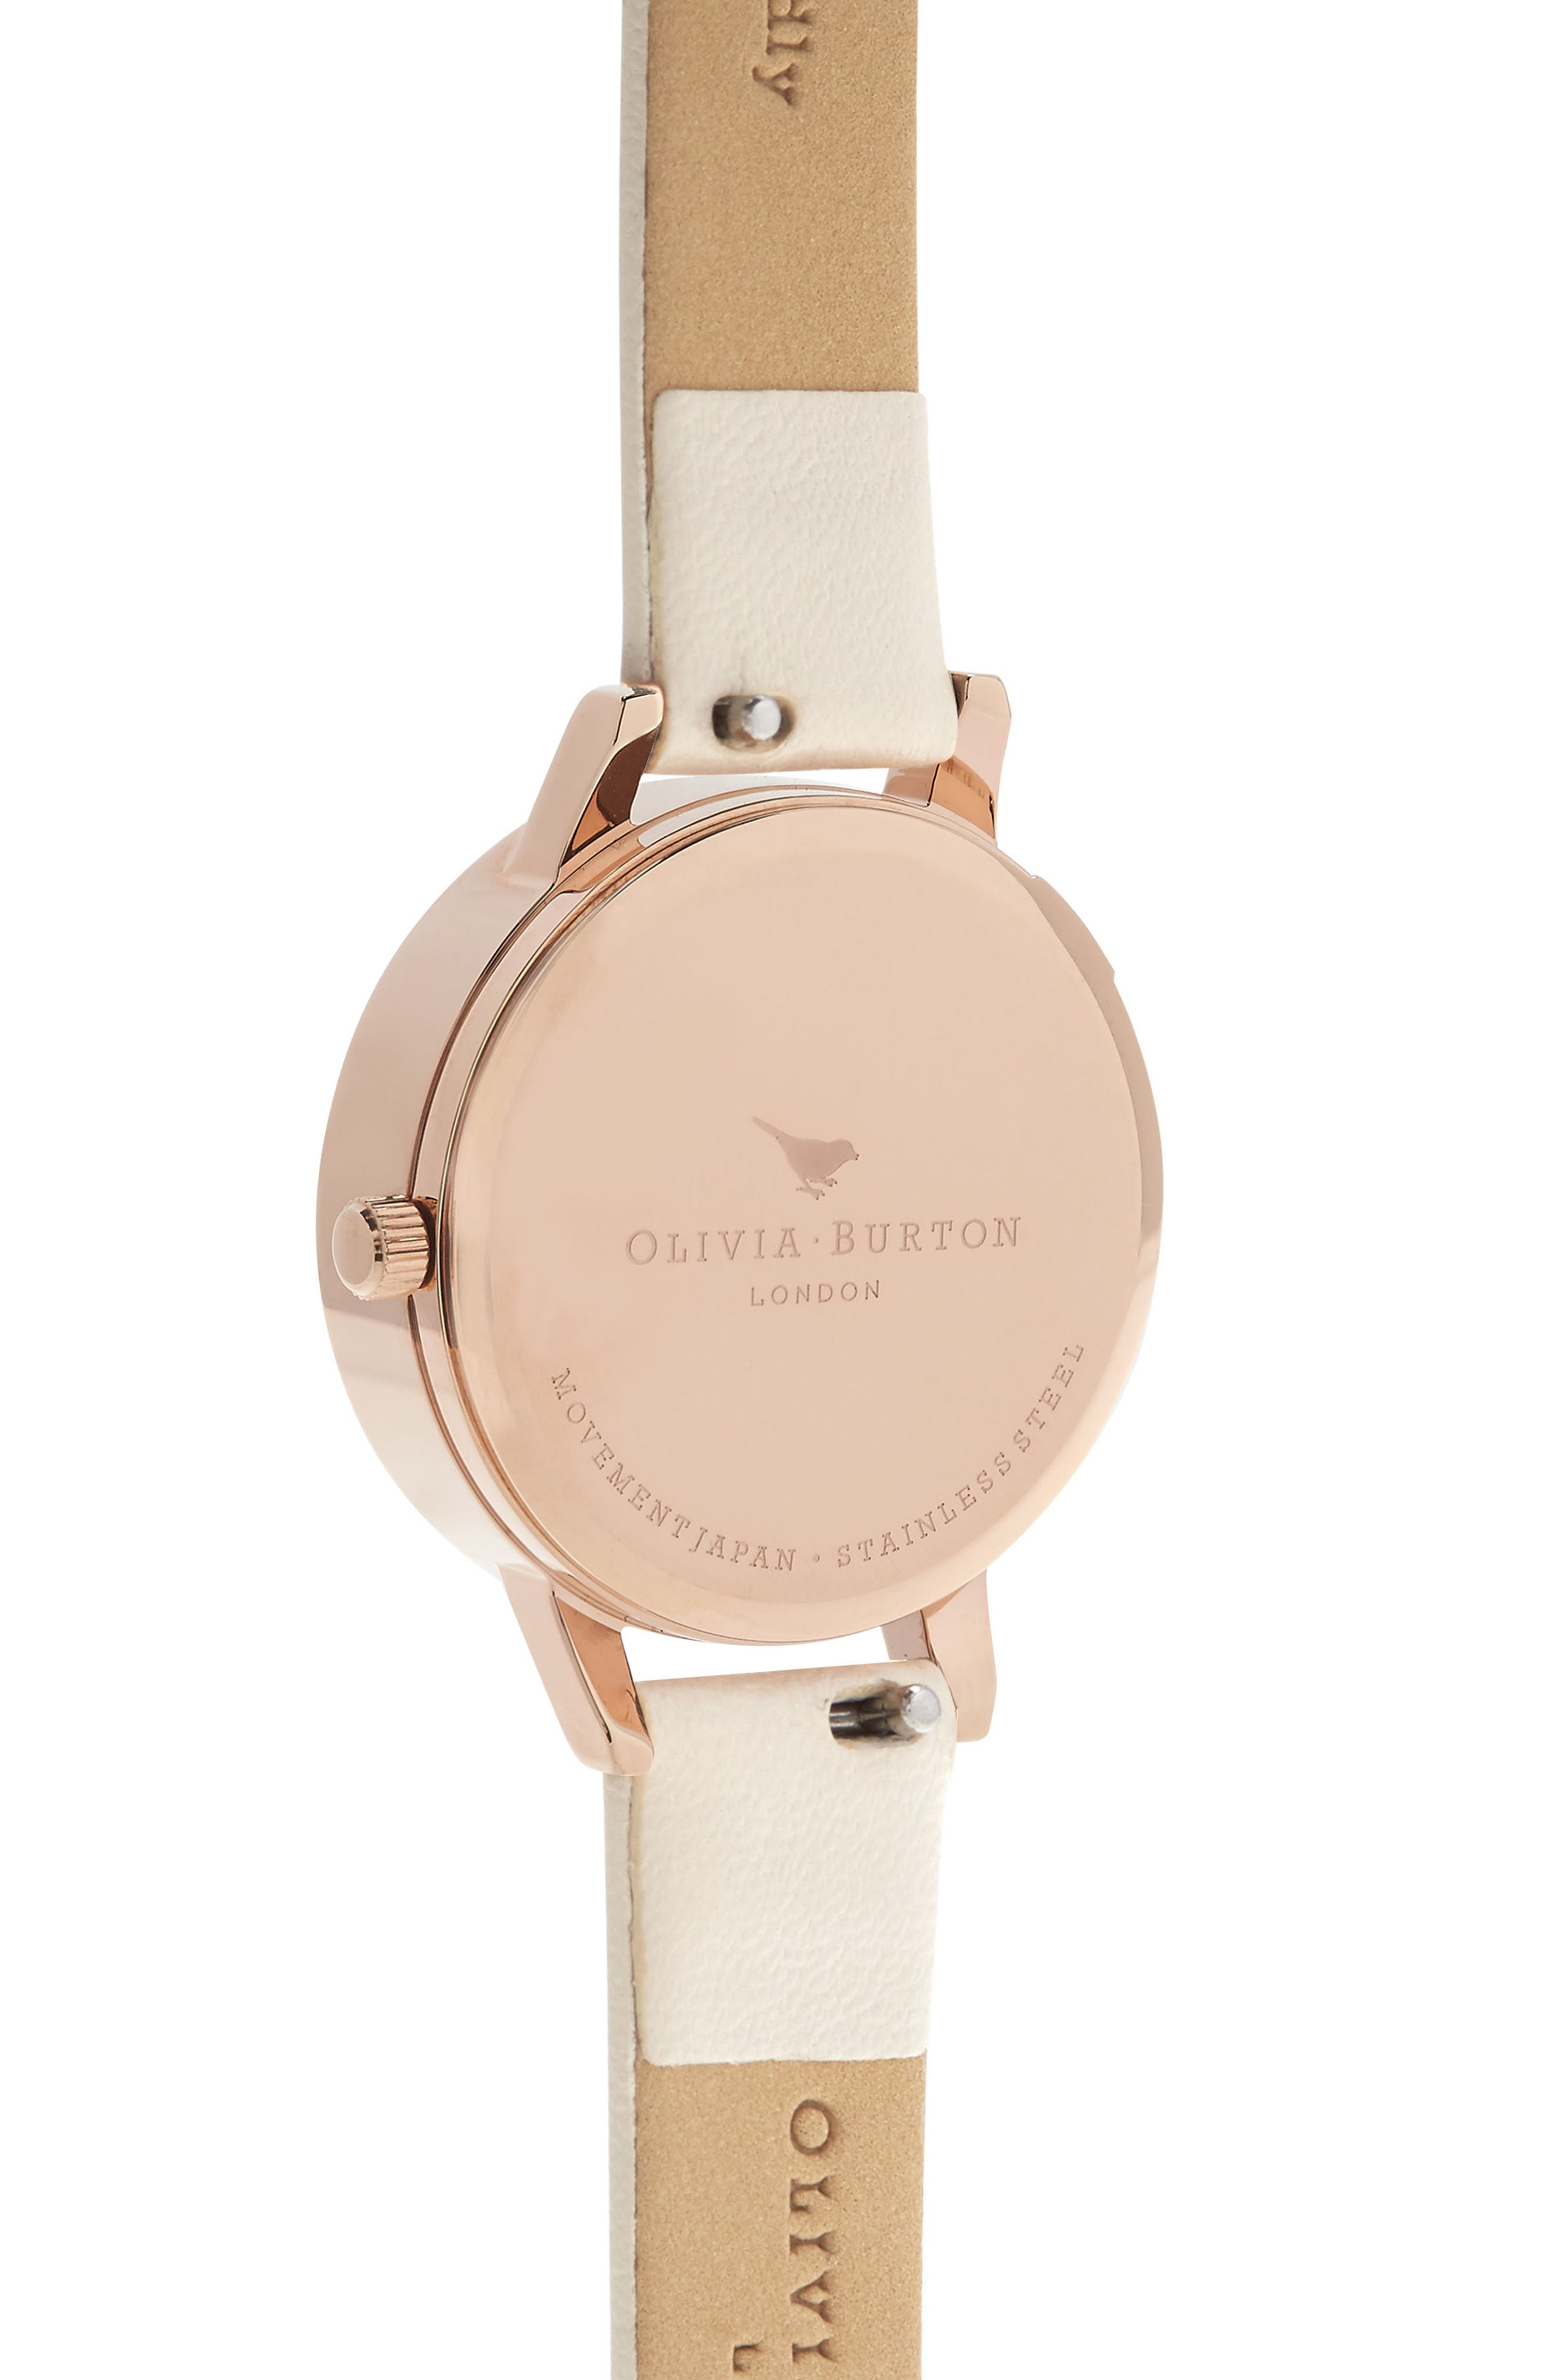 3D Daisey Faux Leather Strap Watch, 30mm,                             Alternate thumbnail 2, color,                             NUDE/ DAISY/ ROSE GOLD